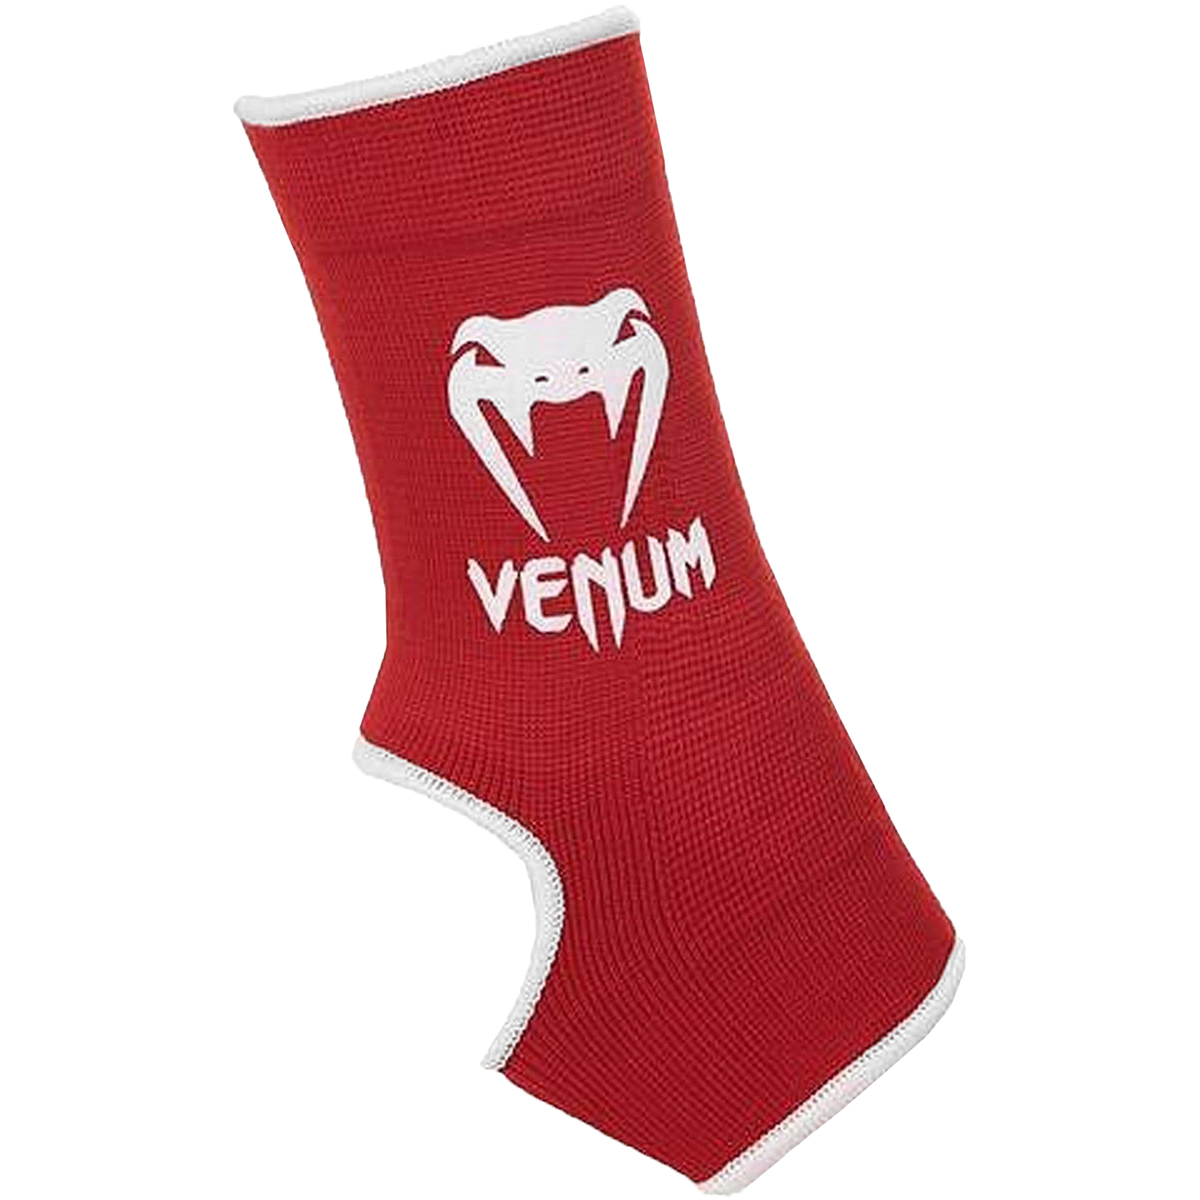 thumbnail 24 - Venum Kontact Slip-On MMA Pro Ankle Support Guards